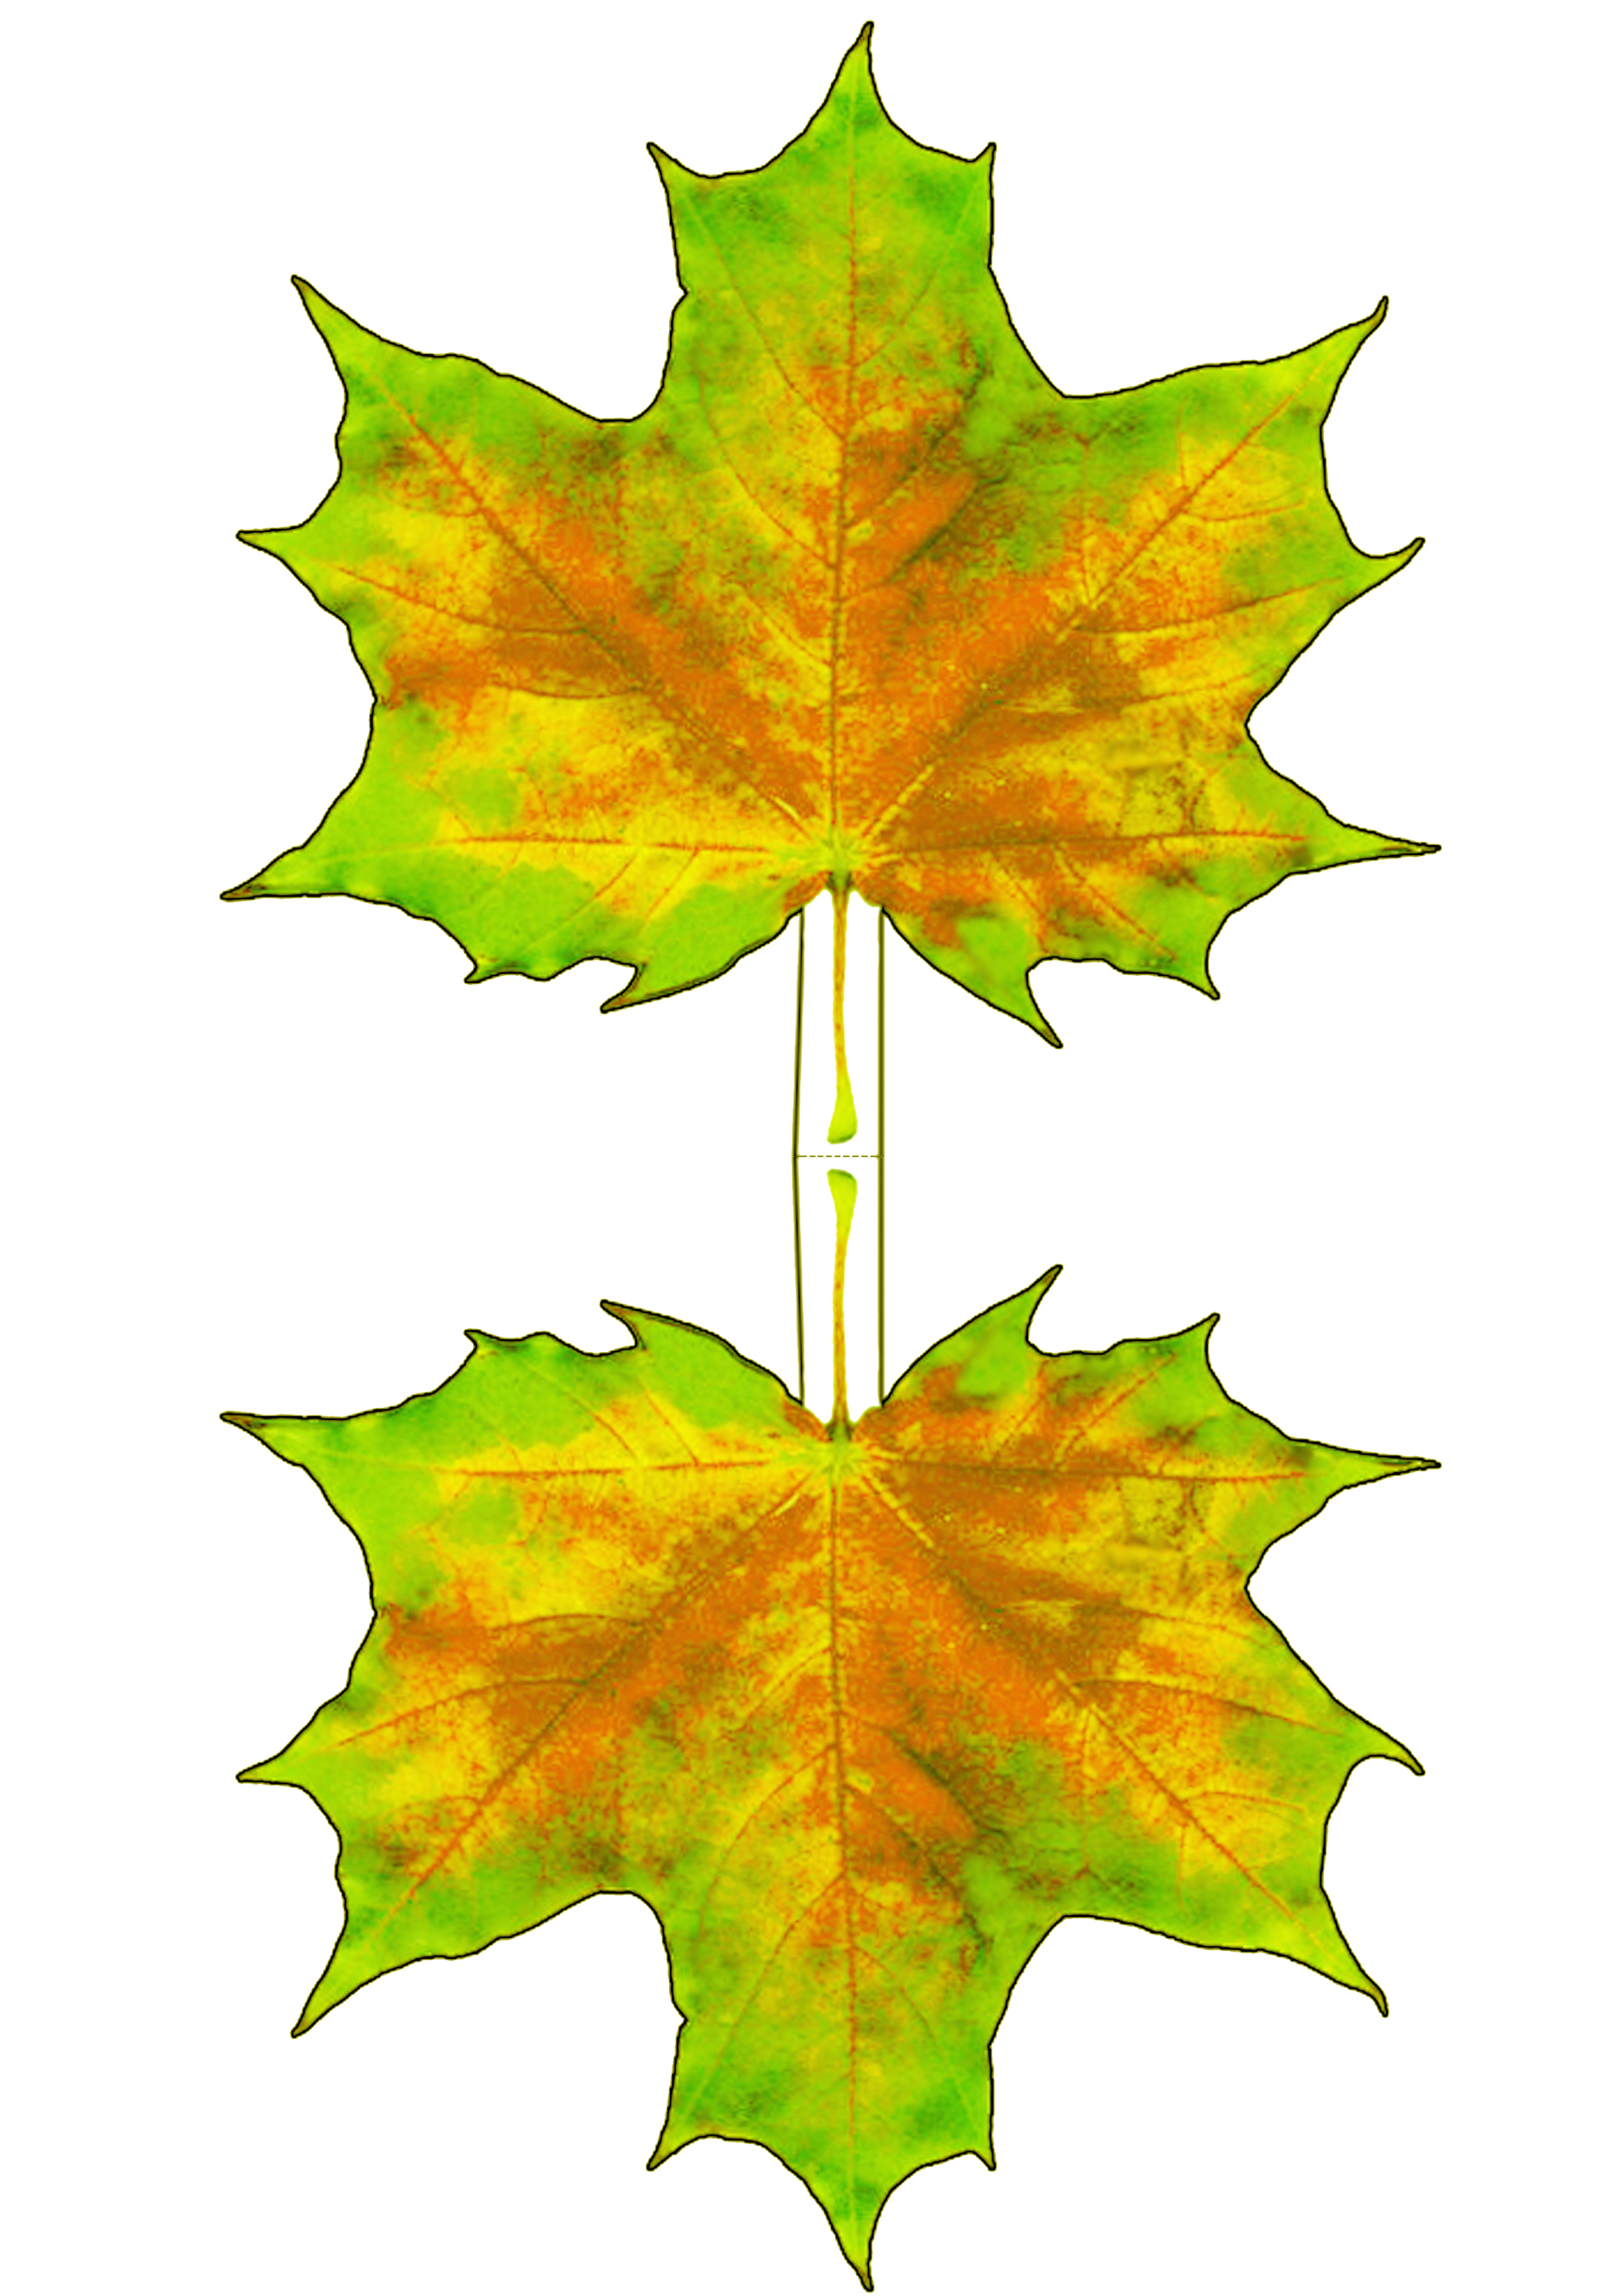 Yellowing Autumn Maple Leaf Decoration